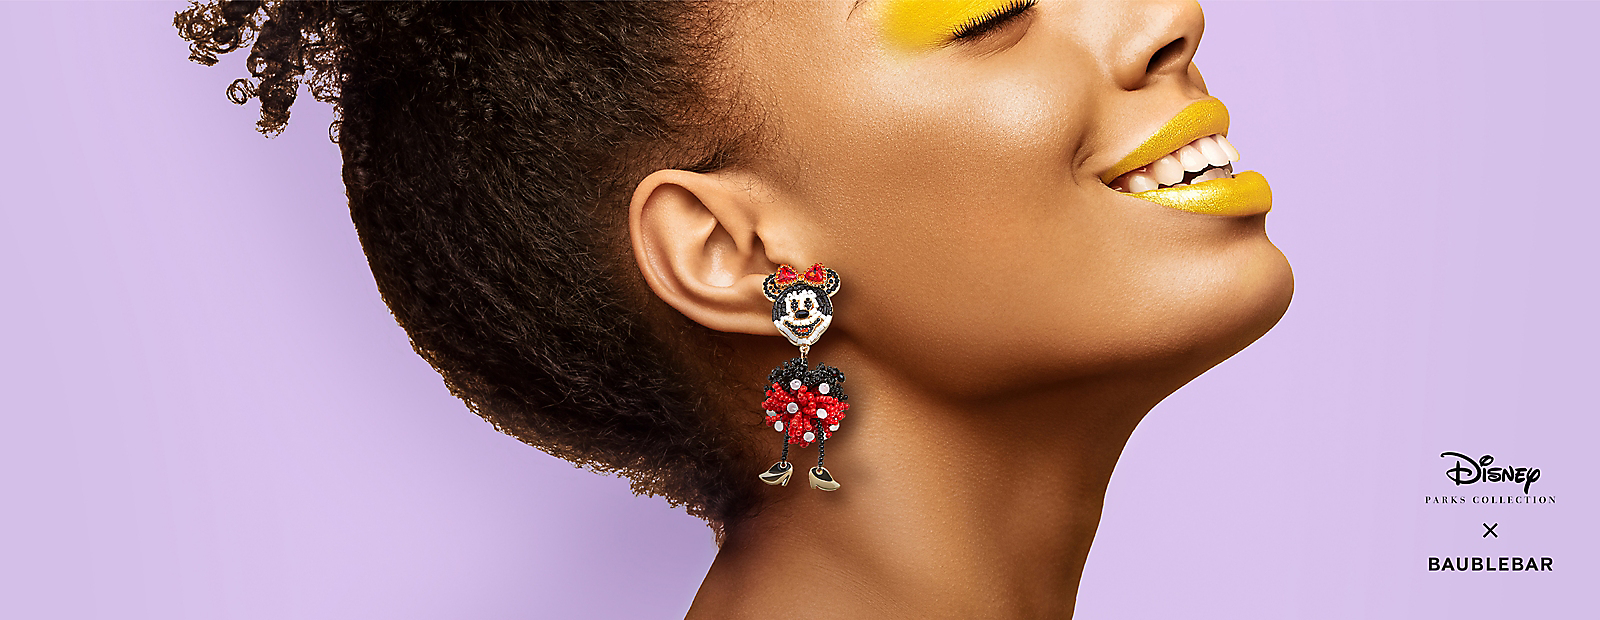 Woman wearing Minnie Mouse earrings